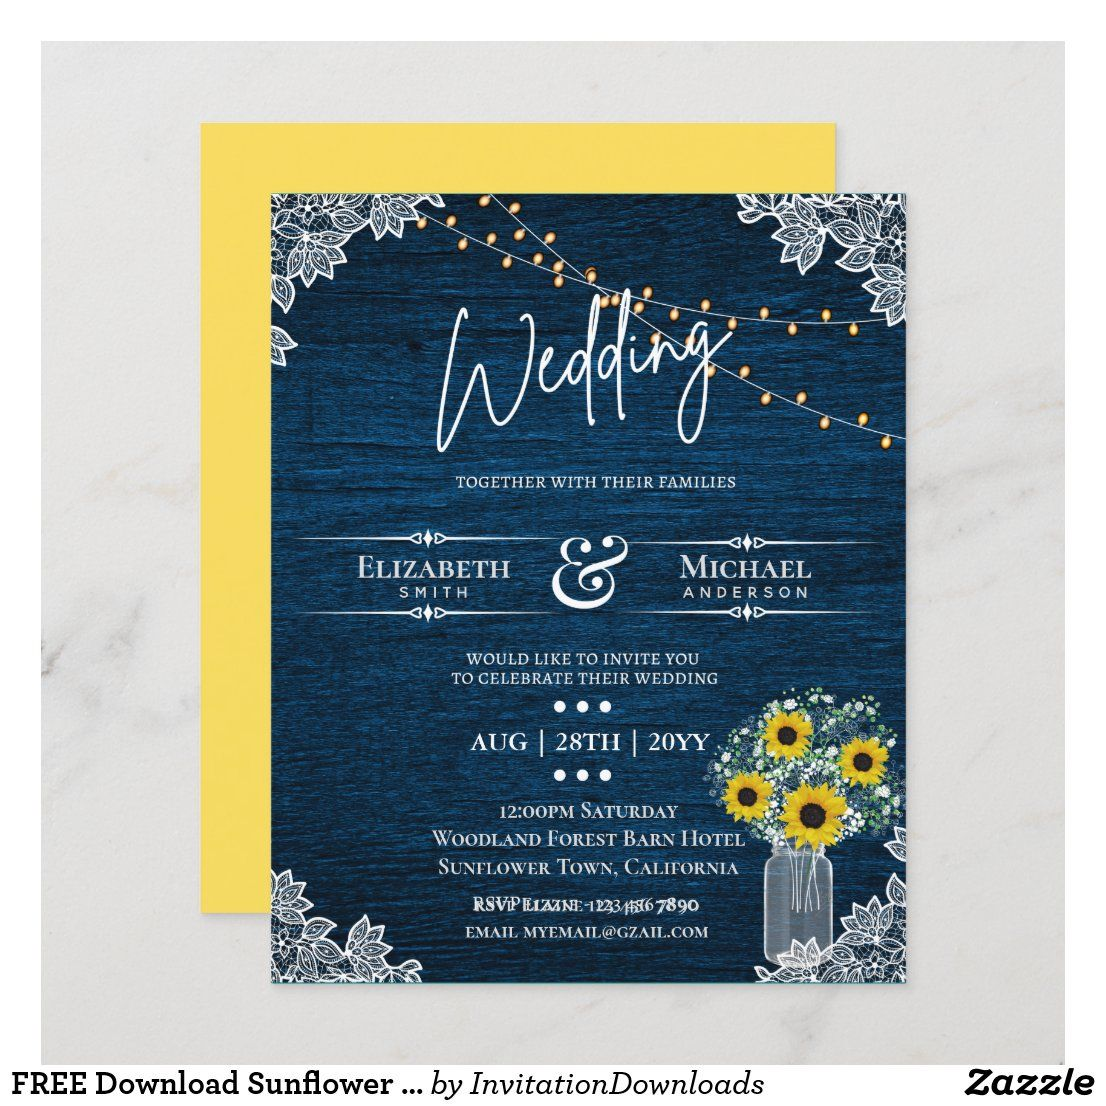 Budget Wedding Invites Floral Customized By Leahg Zazzle Com In 2021 Budget Wedding Invitations Sunflower Wedding Invitations Wedding Invitations